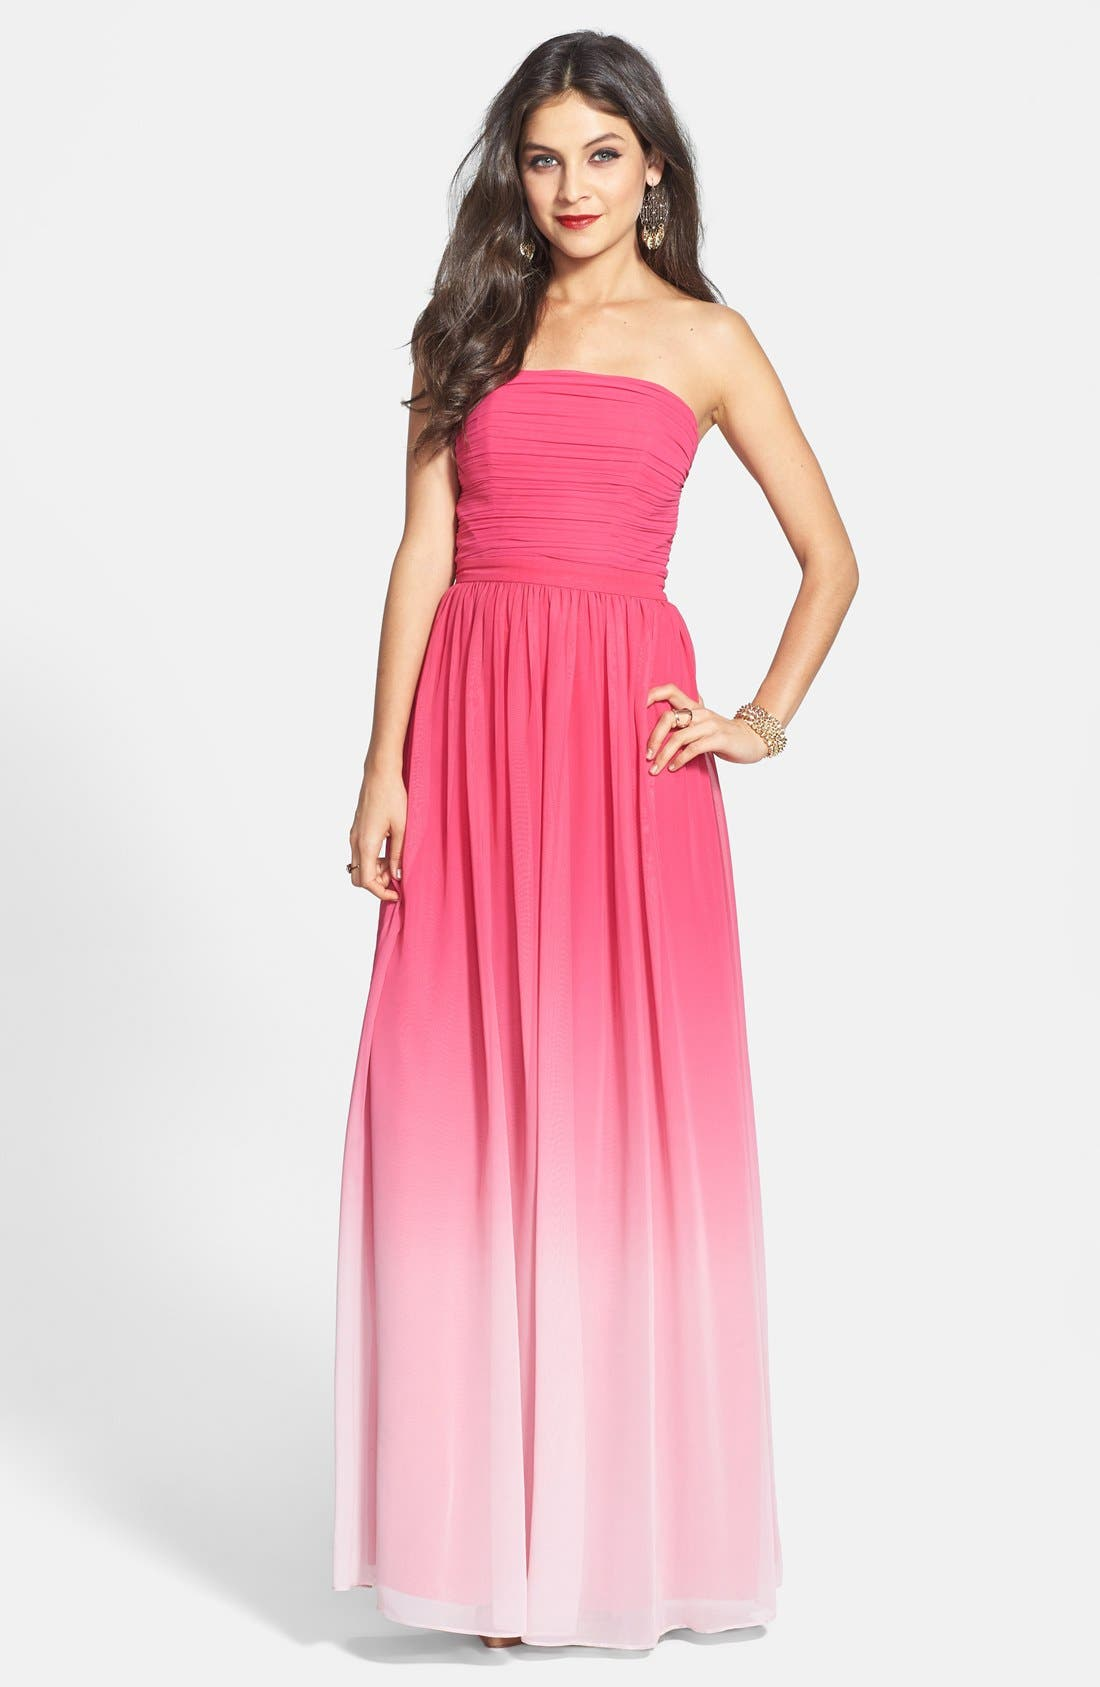 Main Image - ERIN erin fetherston 'Isabelle' Ombré Chiffon Gown